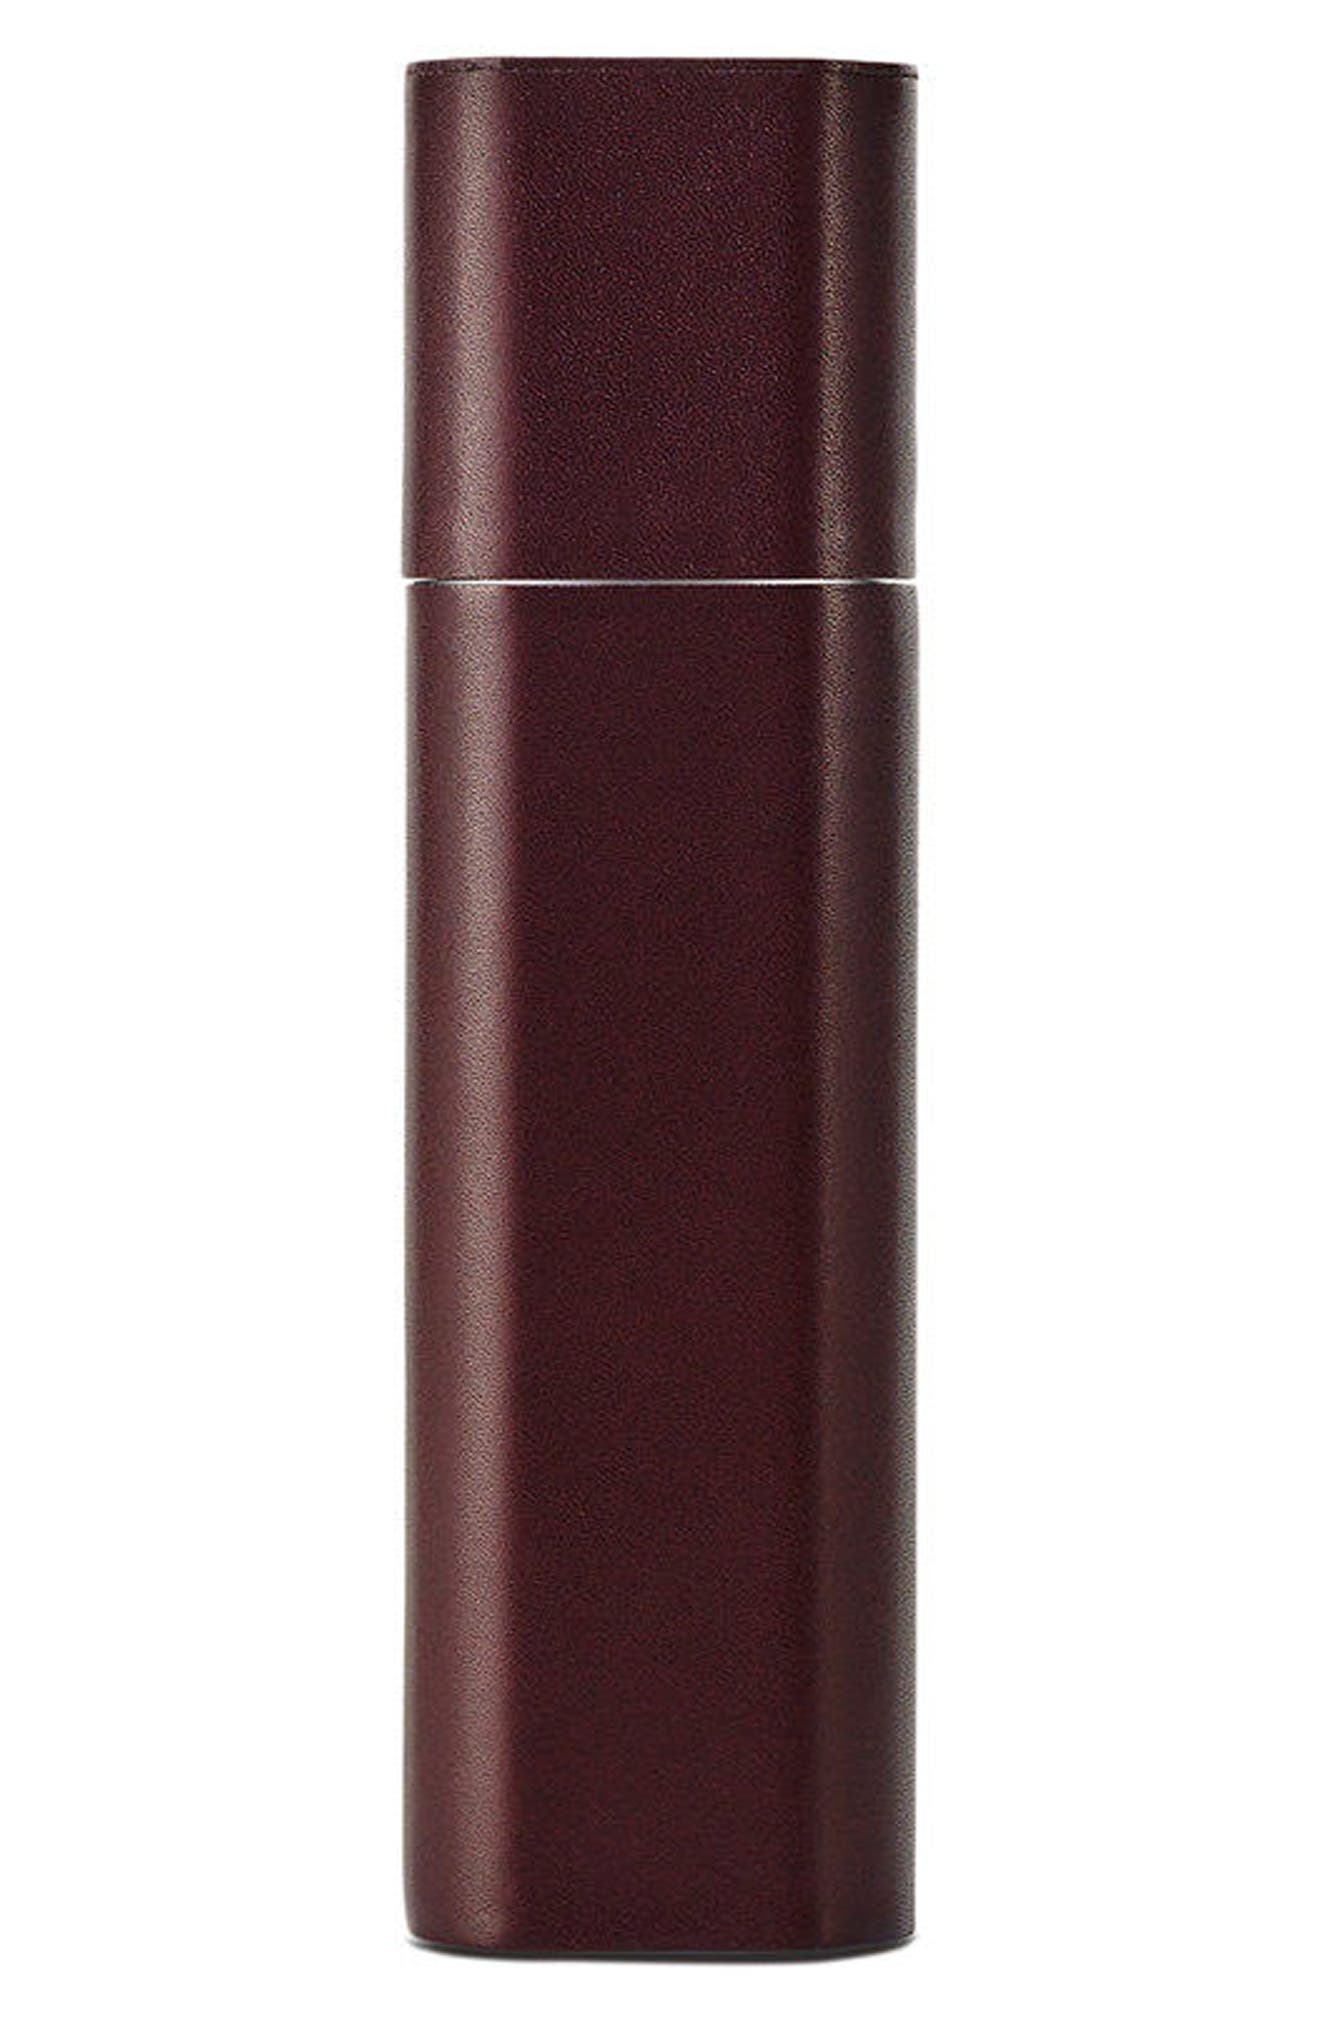 BYREDO Nécessaire de Voyage Leather Travel Case in Burgundy